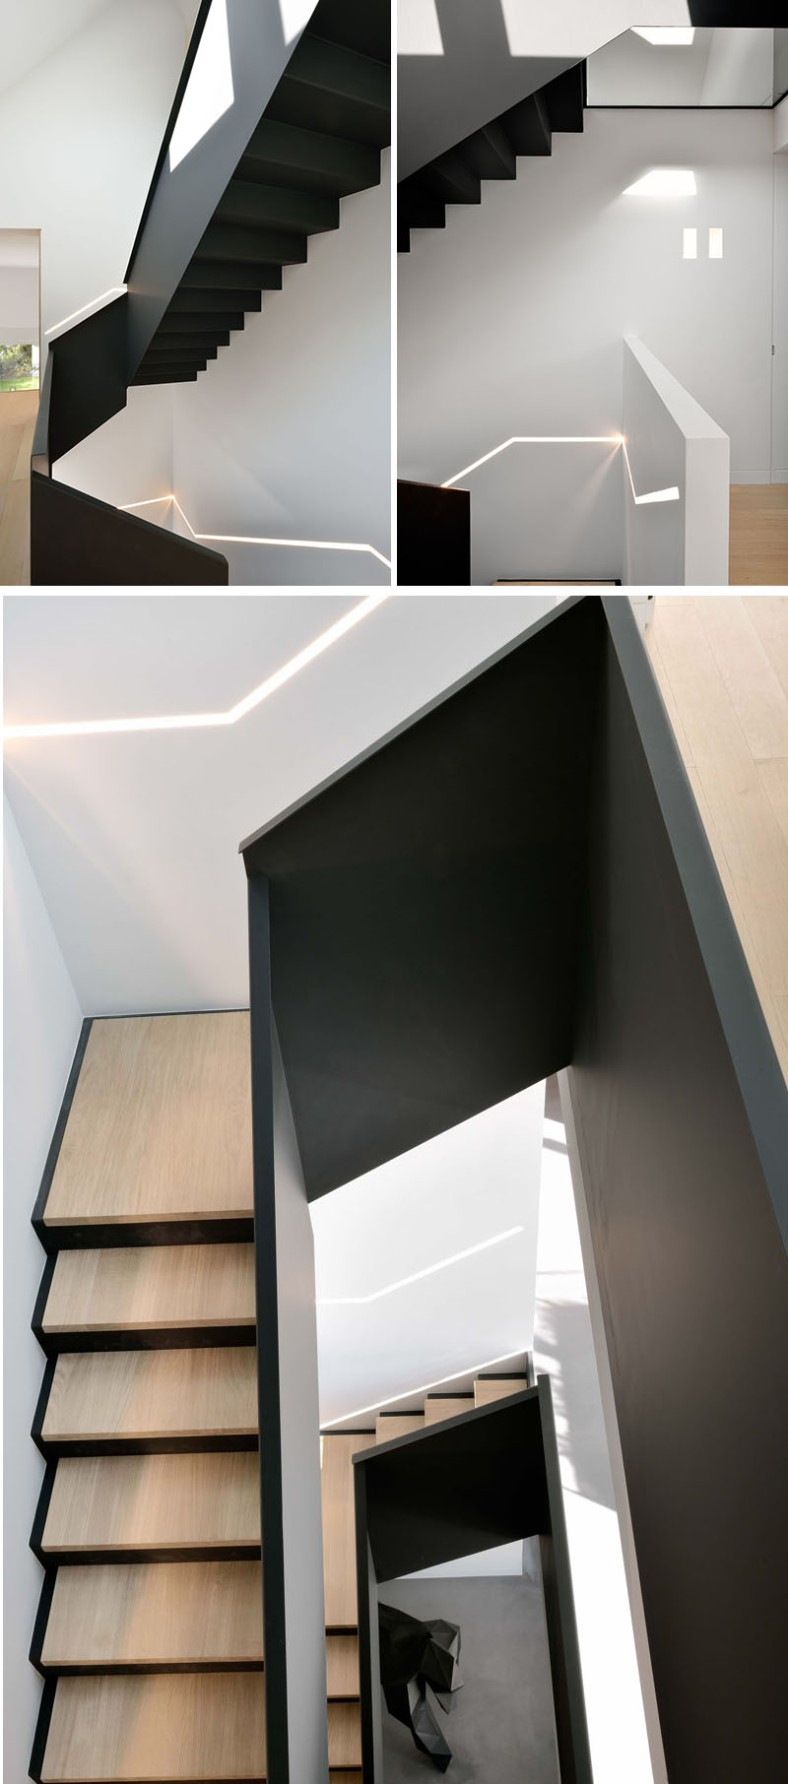 black-and-wood-stairs-111216-1100-04